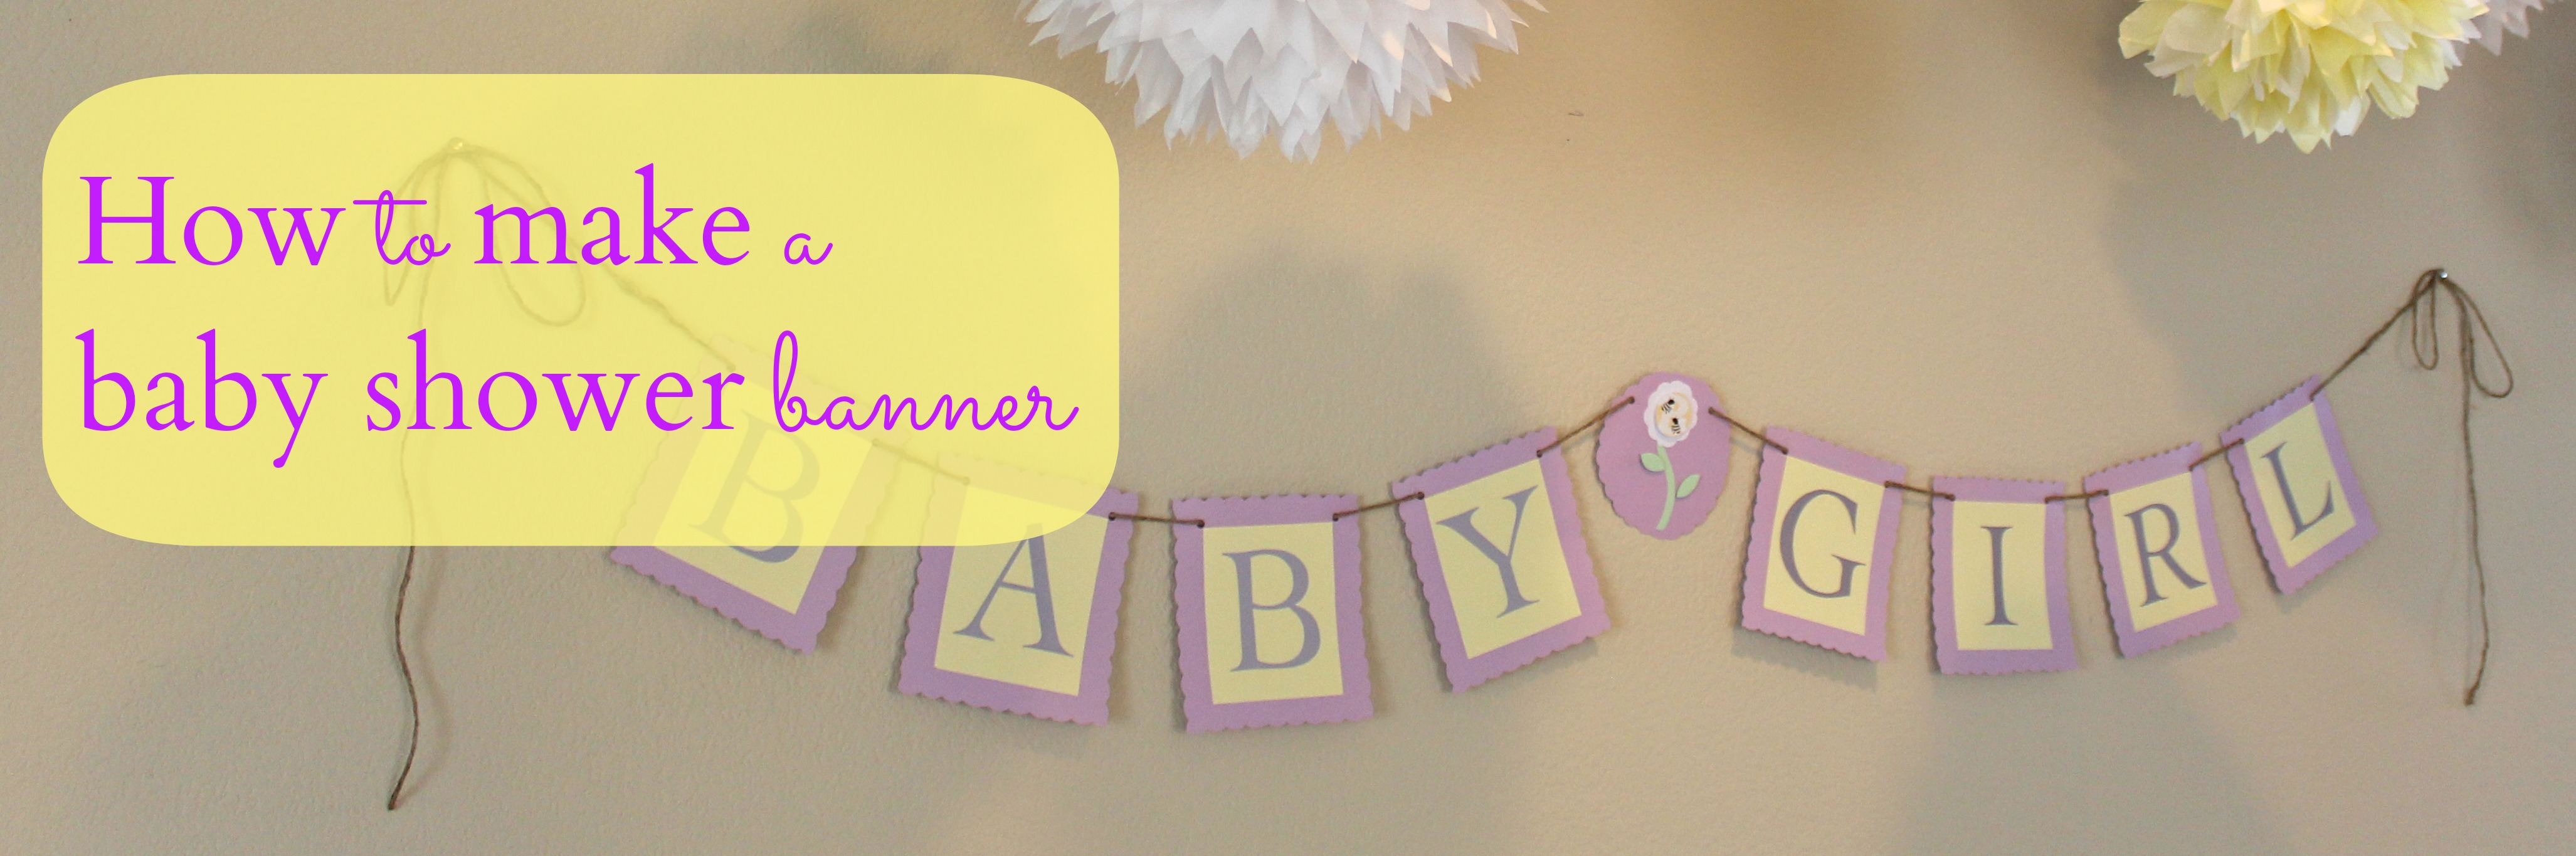 Full Size of Baby Shower:89+ Indulging Baby Shower Banner Picture Inspirations Baby Shower Banner Un Baby Shower Baby Shower Desserts Baby Shower Food Fiesta De Baby Shower My Baby Shower More Baby Shower Stuff The Silberez Life